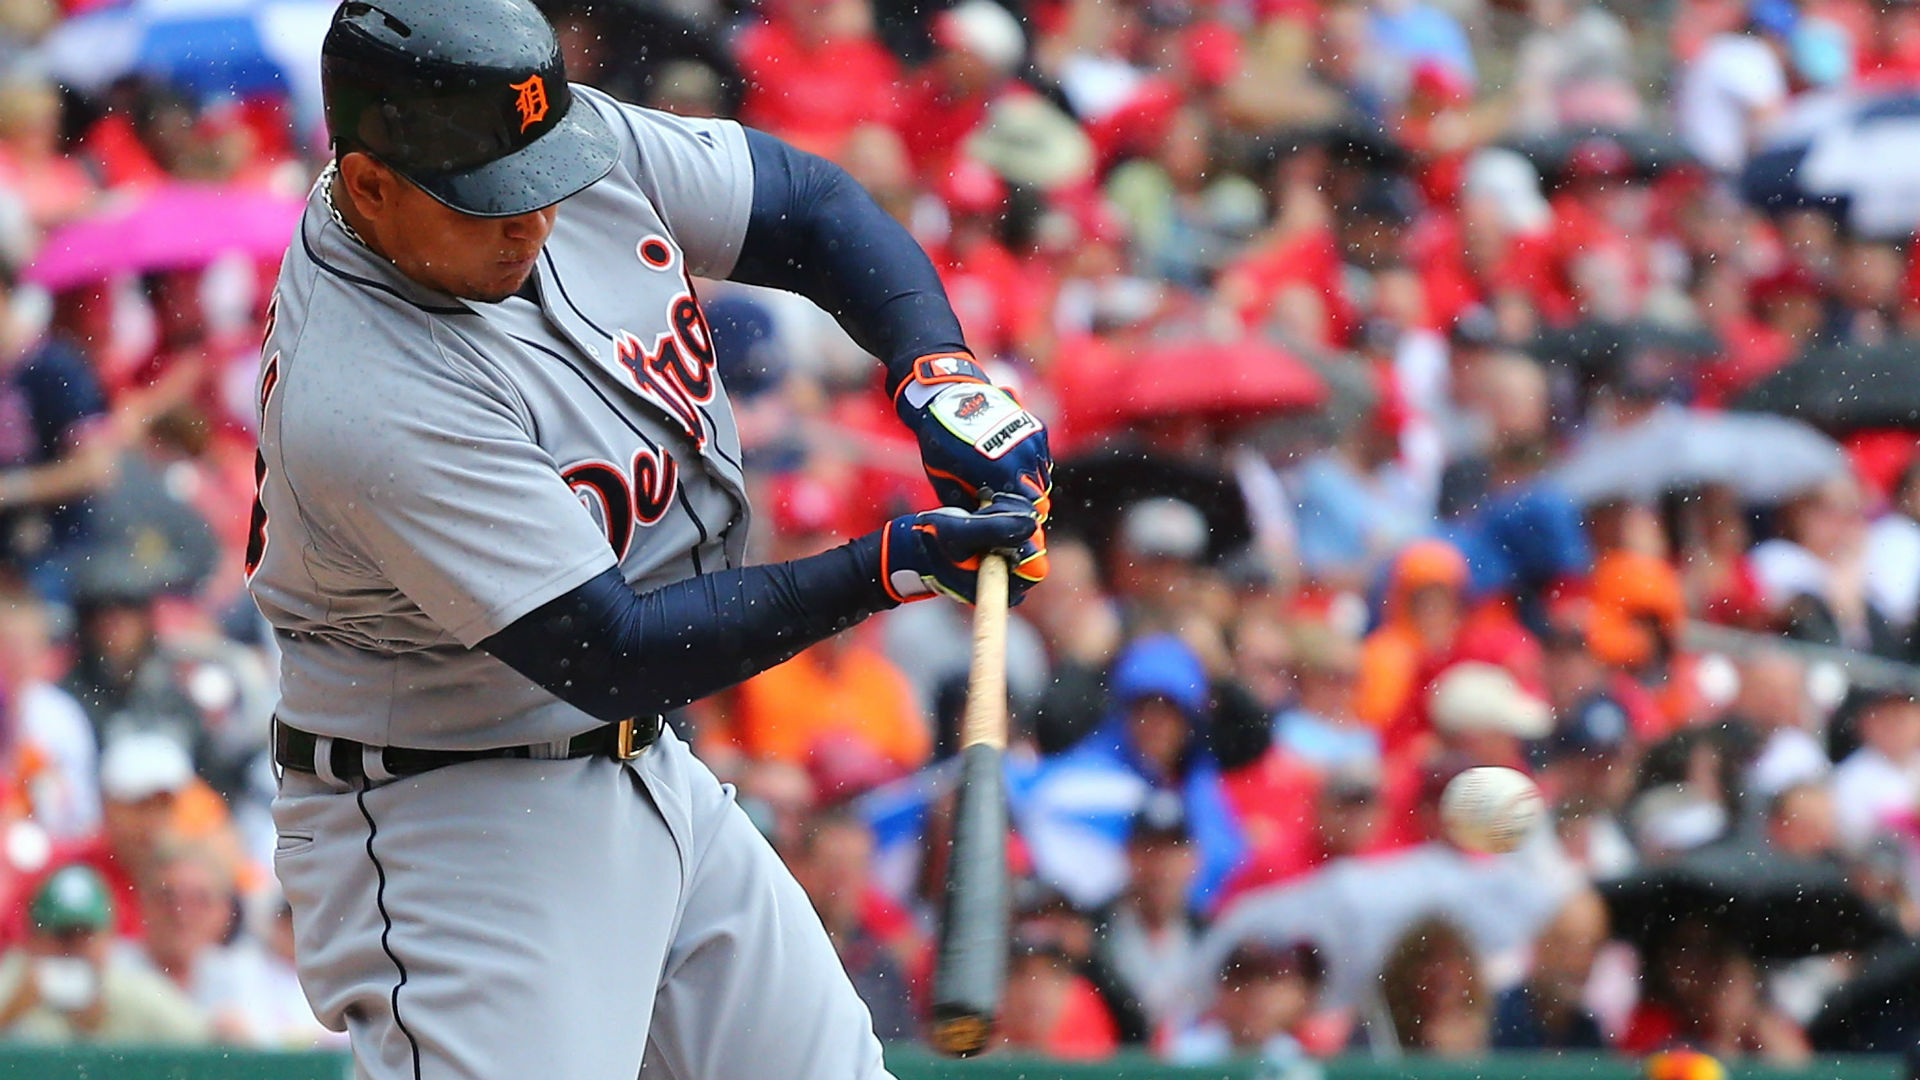 Tigers lose Miguel Cabrera for six weeks after calf injury